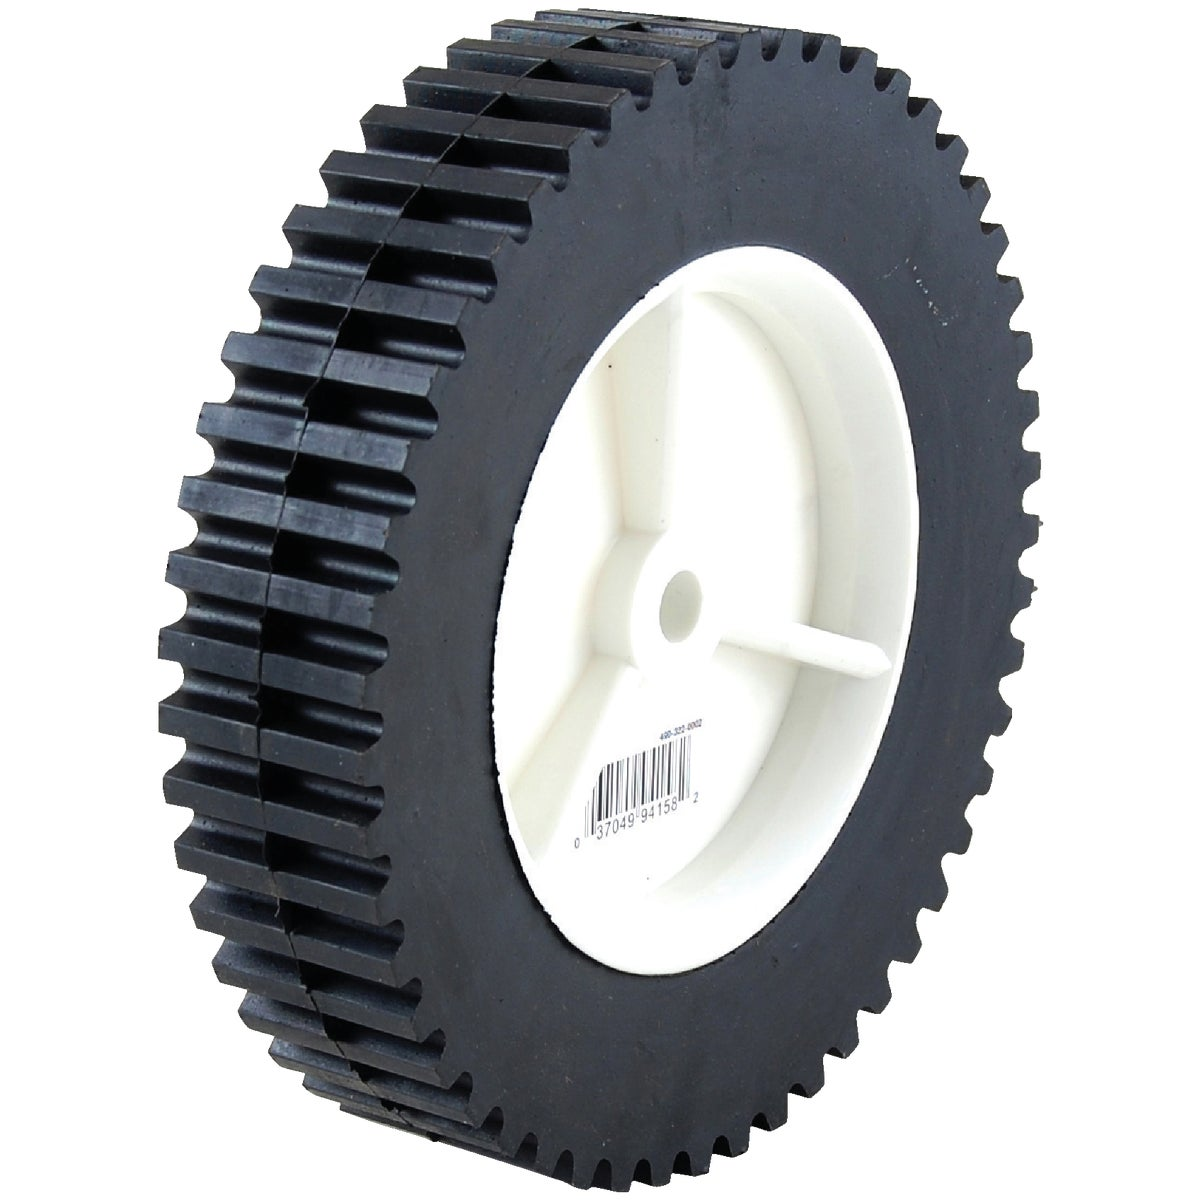 10X1.75 OFFSET MOW WHEEL - 490-323-0002 by Arnold Corp